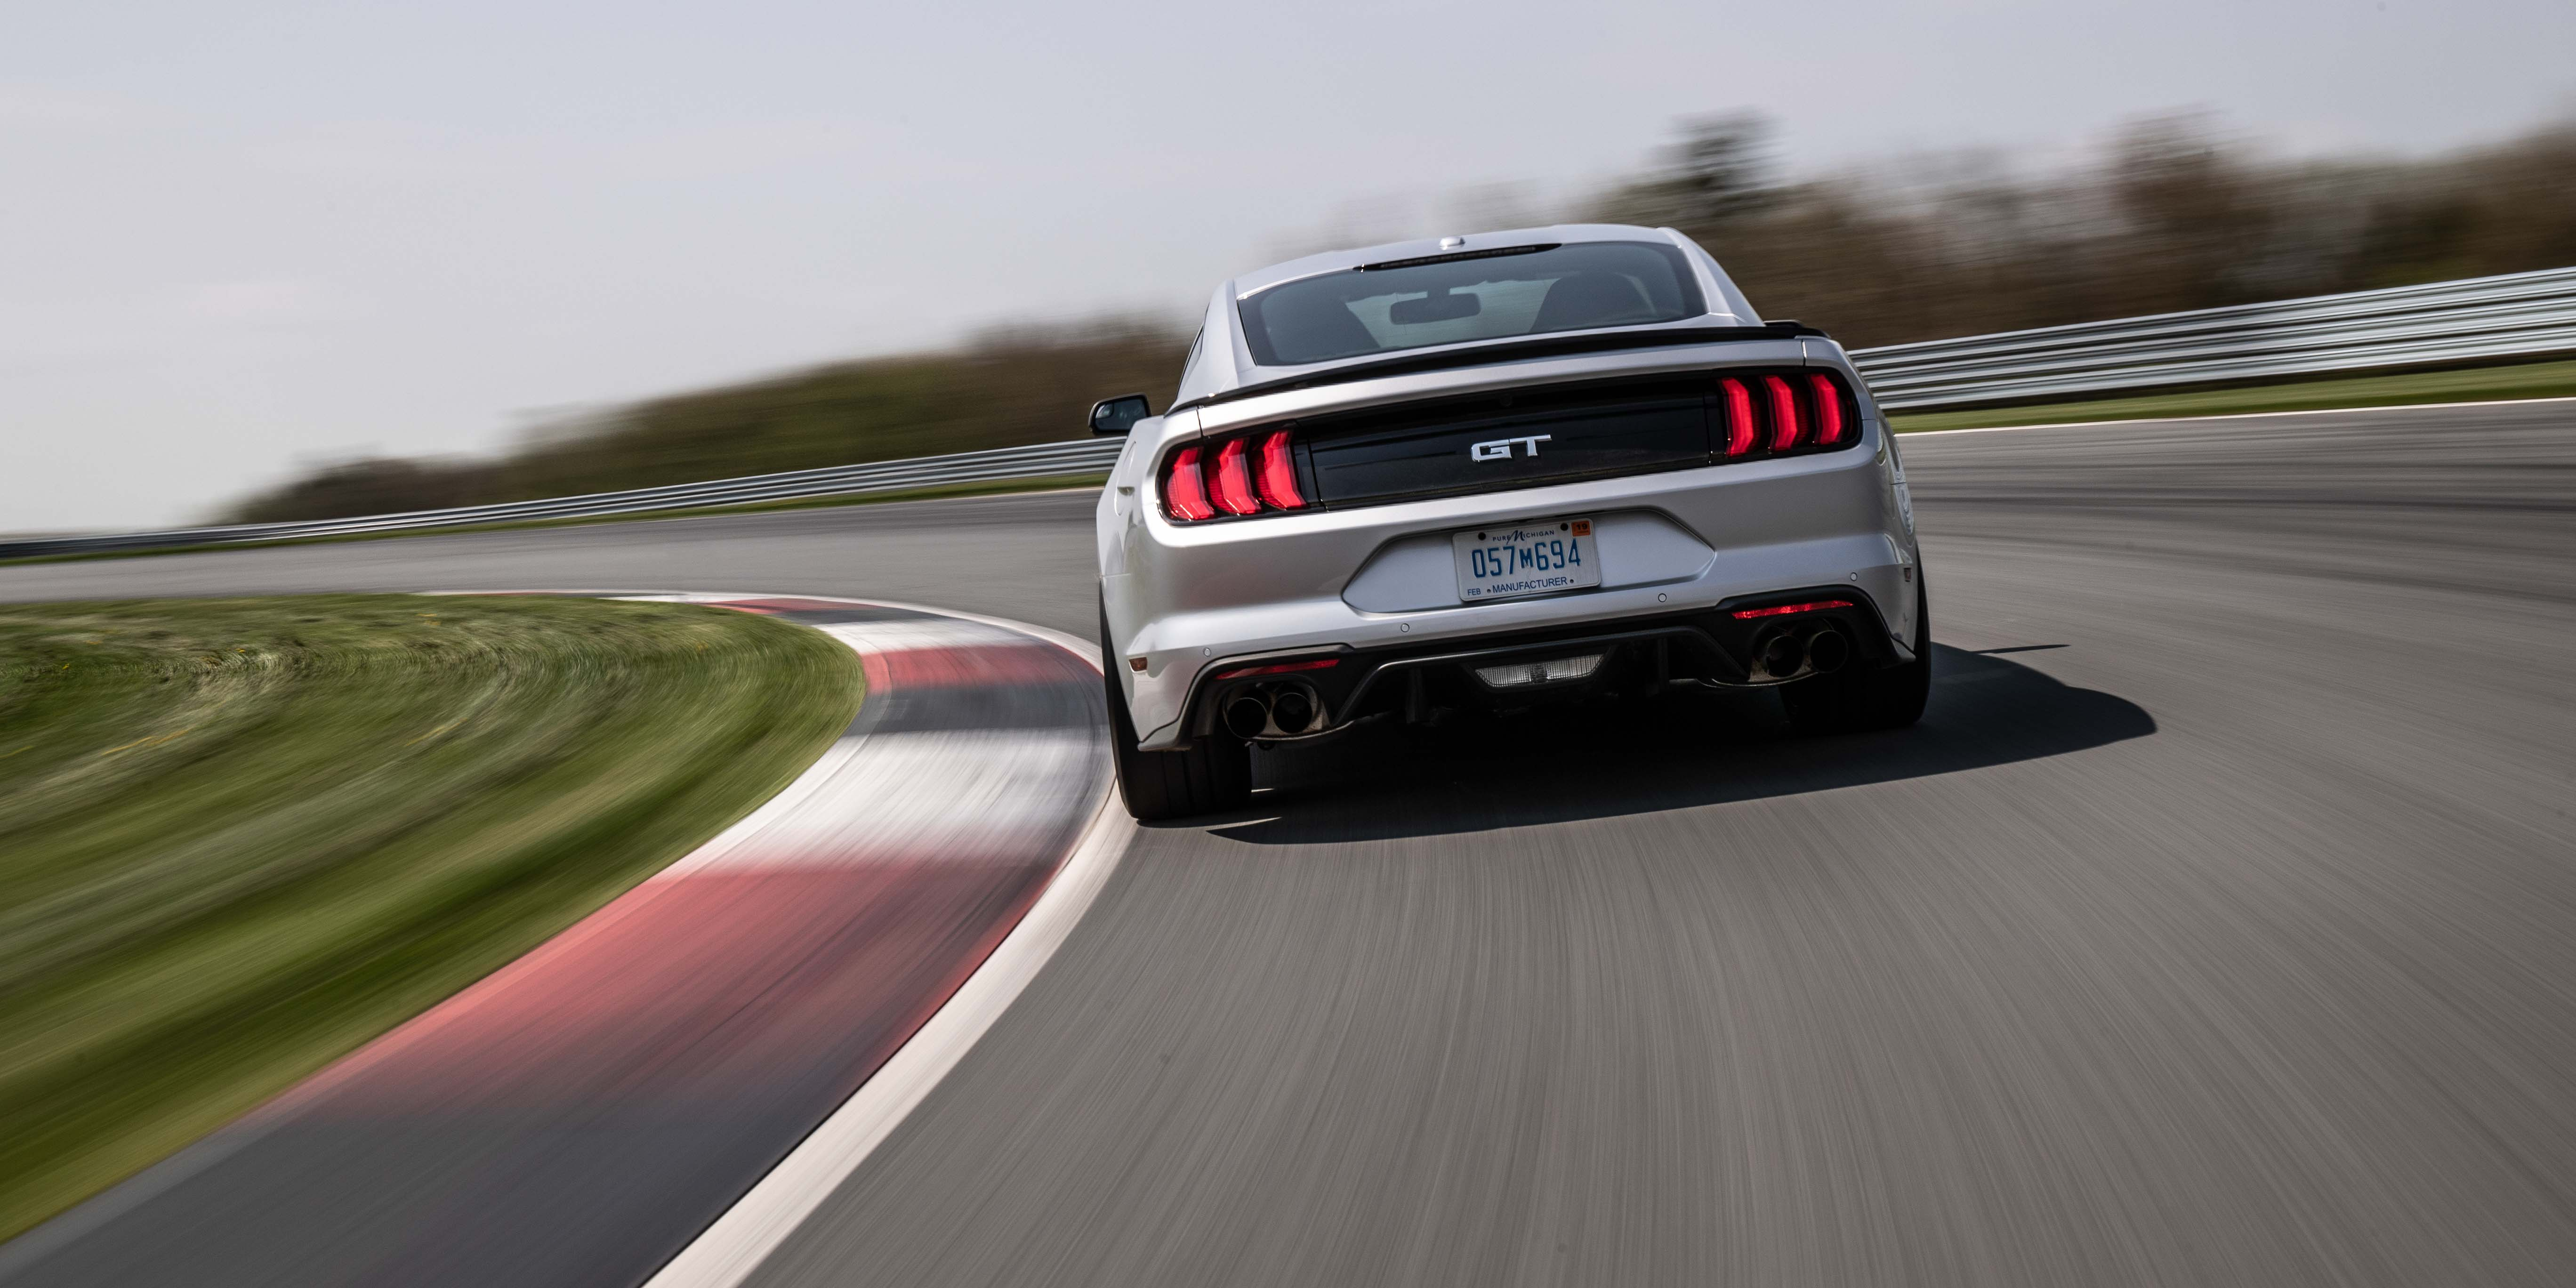 2018 Ford Mustang GT Performance Pack 2 rear curve